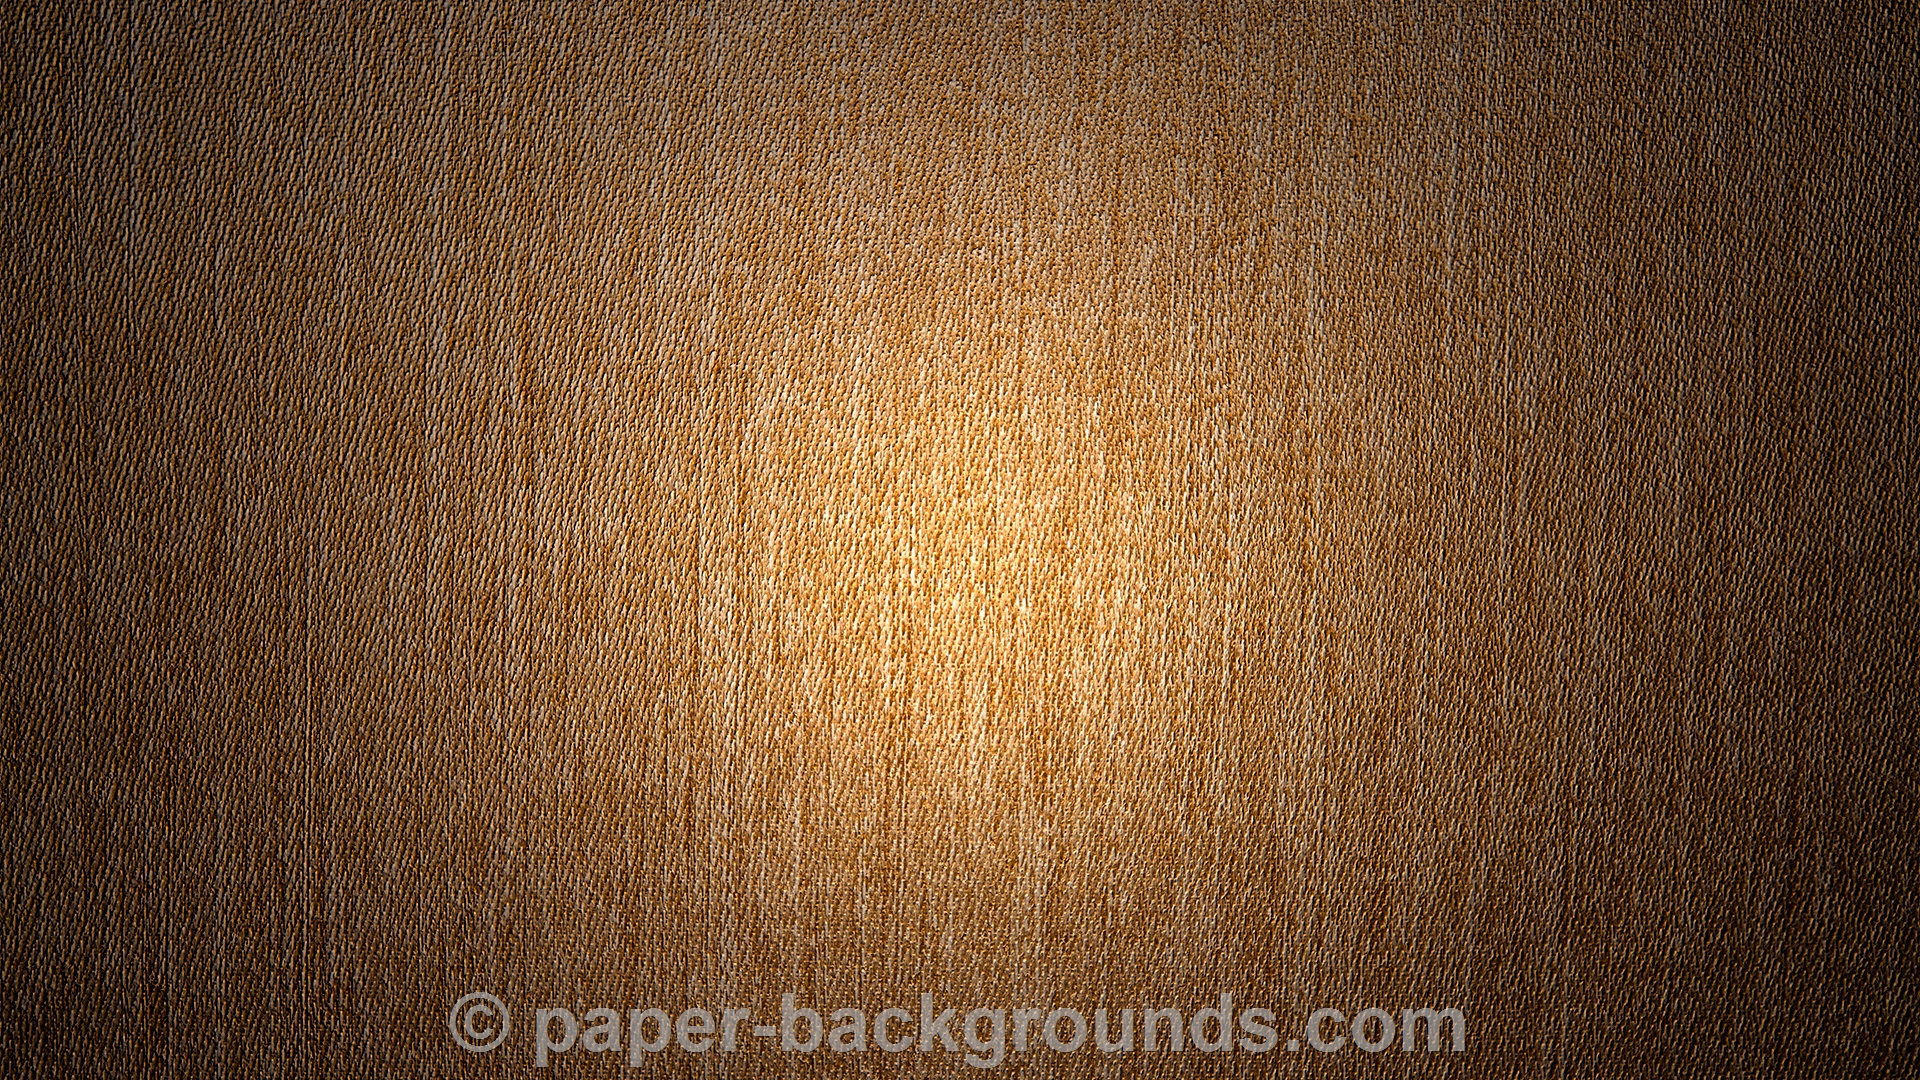 Vintage Brown Canvas Texture Background HD